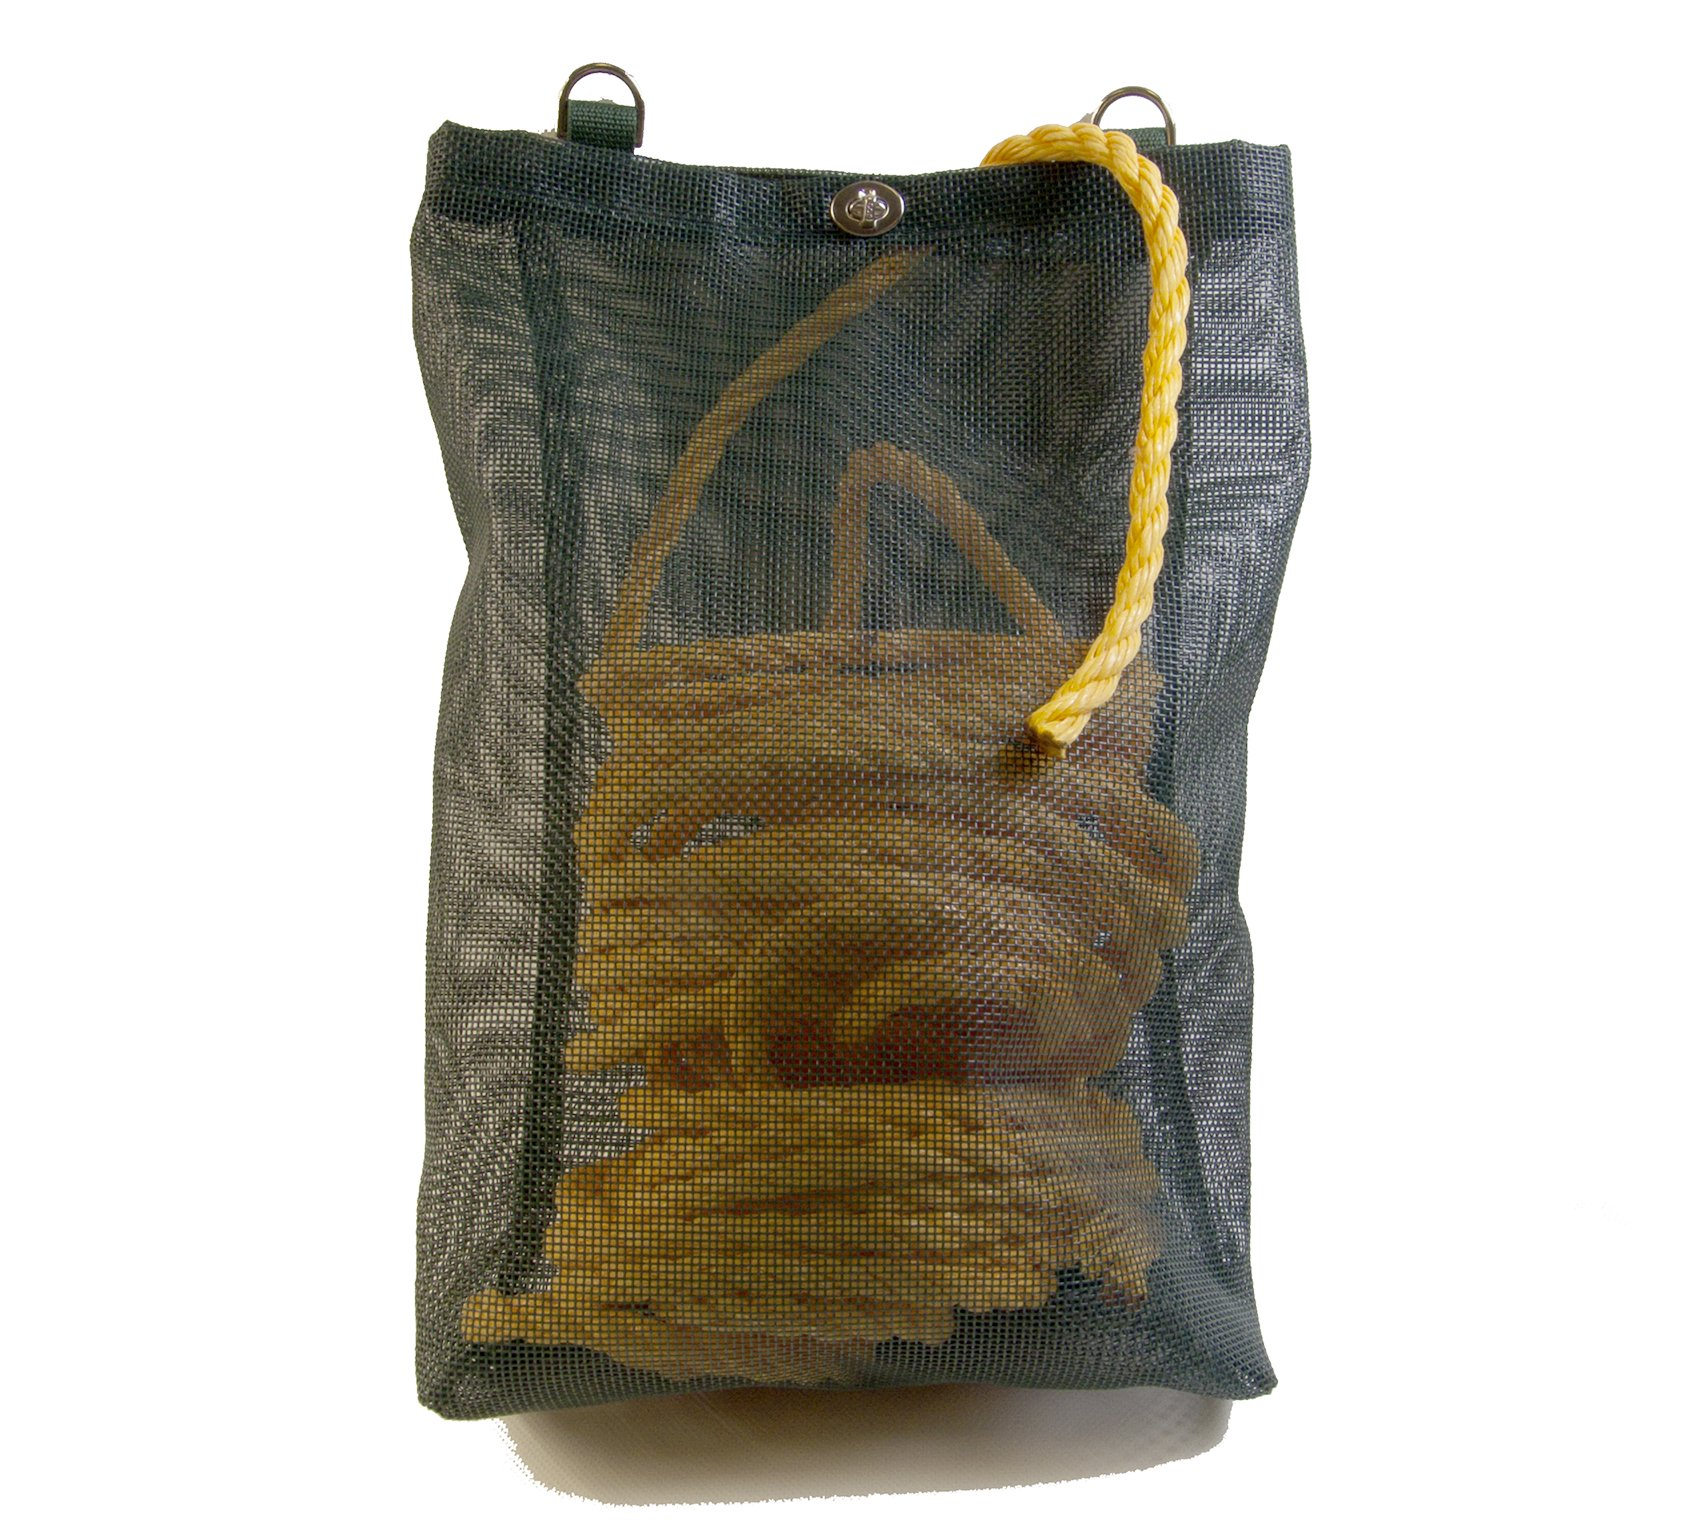 Rope Bag, Green Mesh, Heavy Duty, Great for Boats or Shore Lines